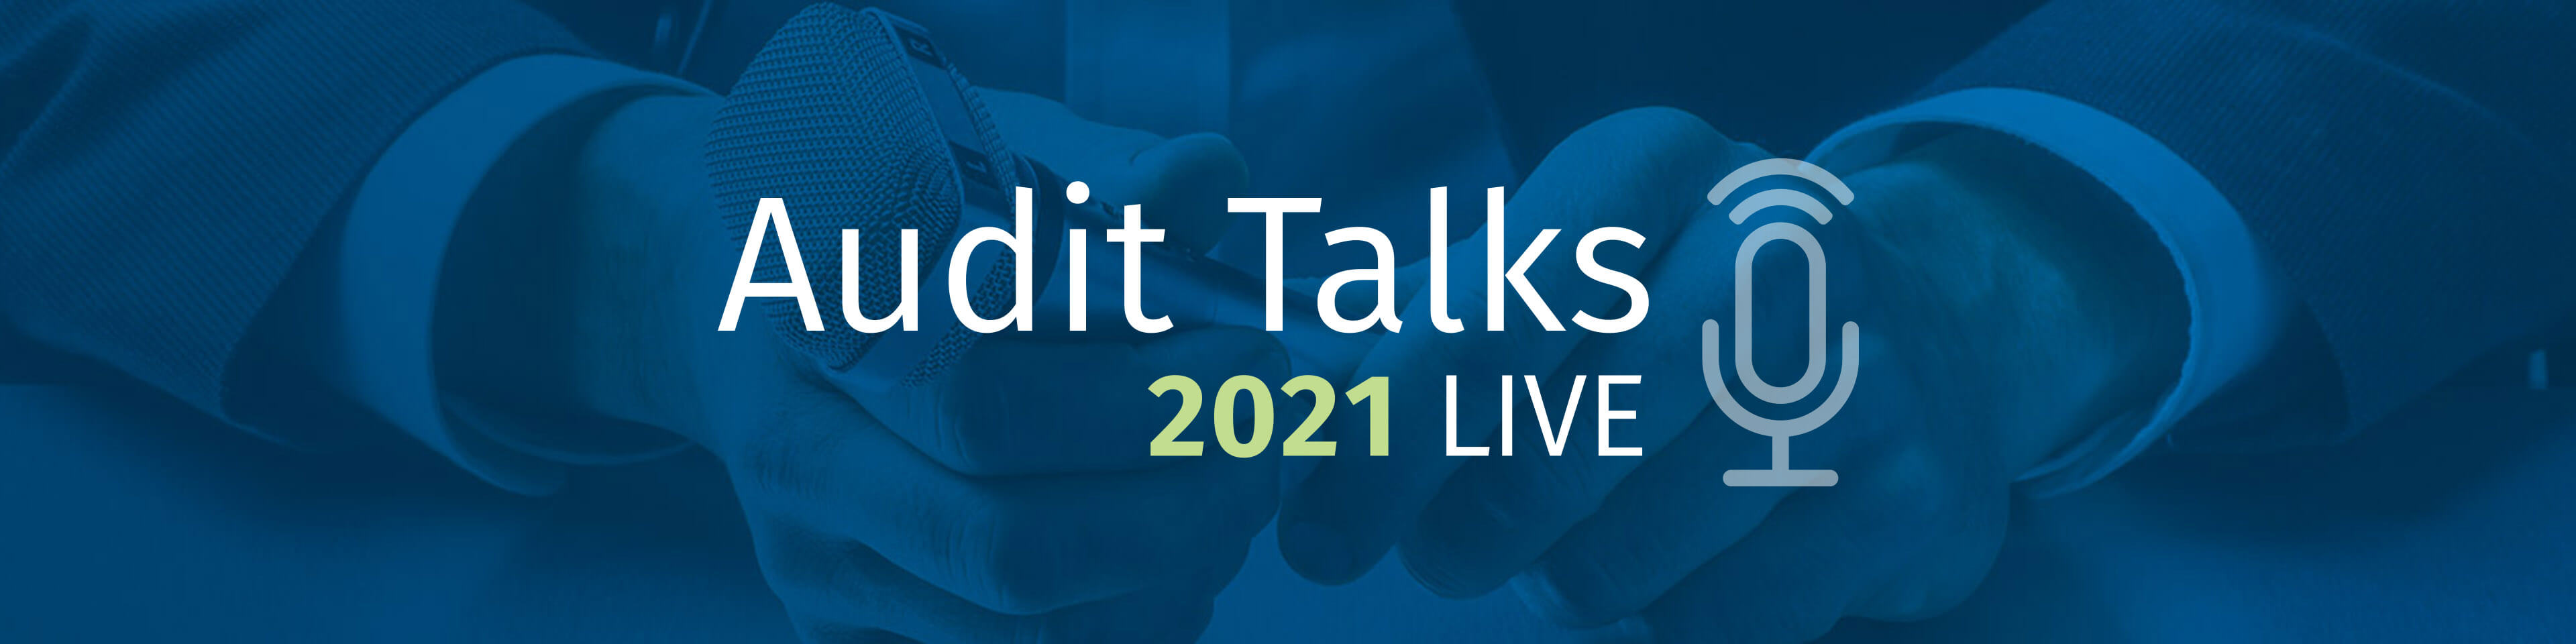 Audit Talks LIVE 2021: How to Become an Expert